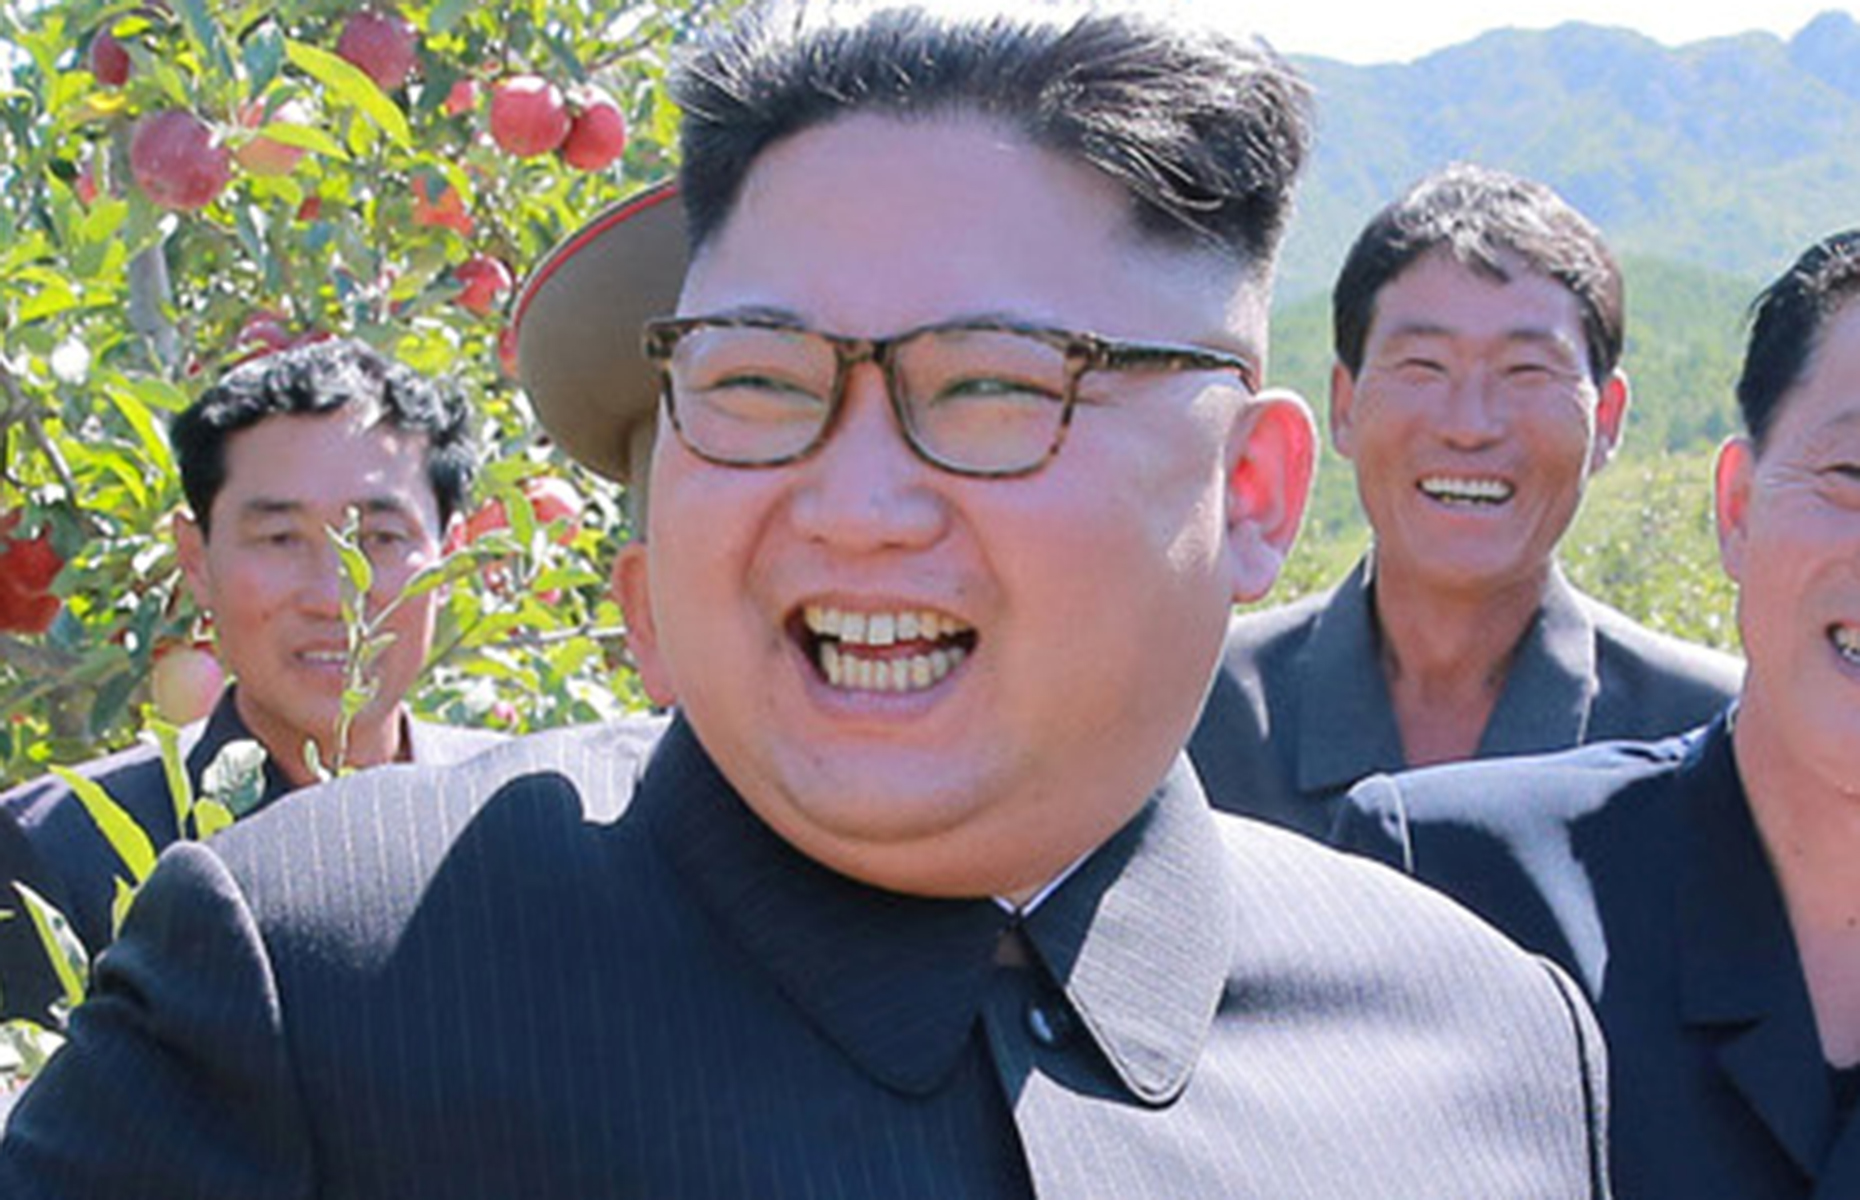 North Korean leader Kim Jong Un gives field guidance during a visit to a fruit orchard in Kwail county, South Hwanghae province in this undated photo released by North Korea's Korean Central News Agency (KCNA) in Pyongyang.